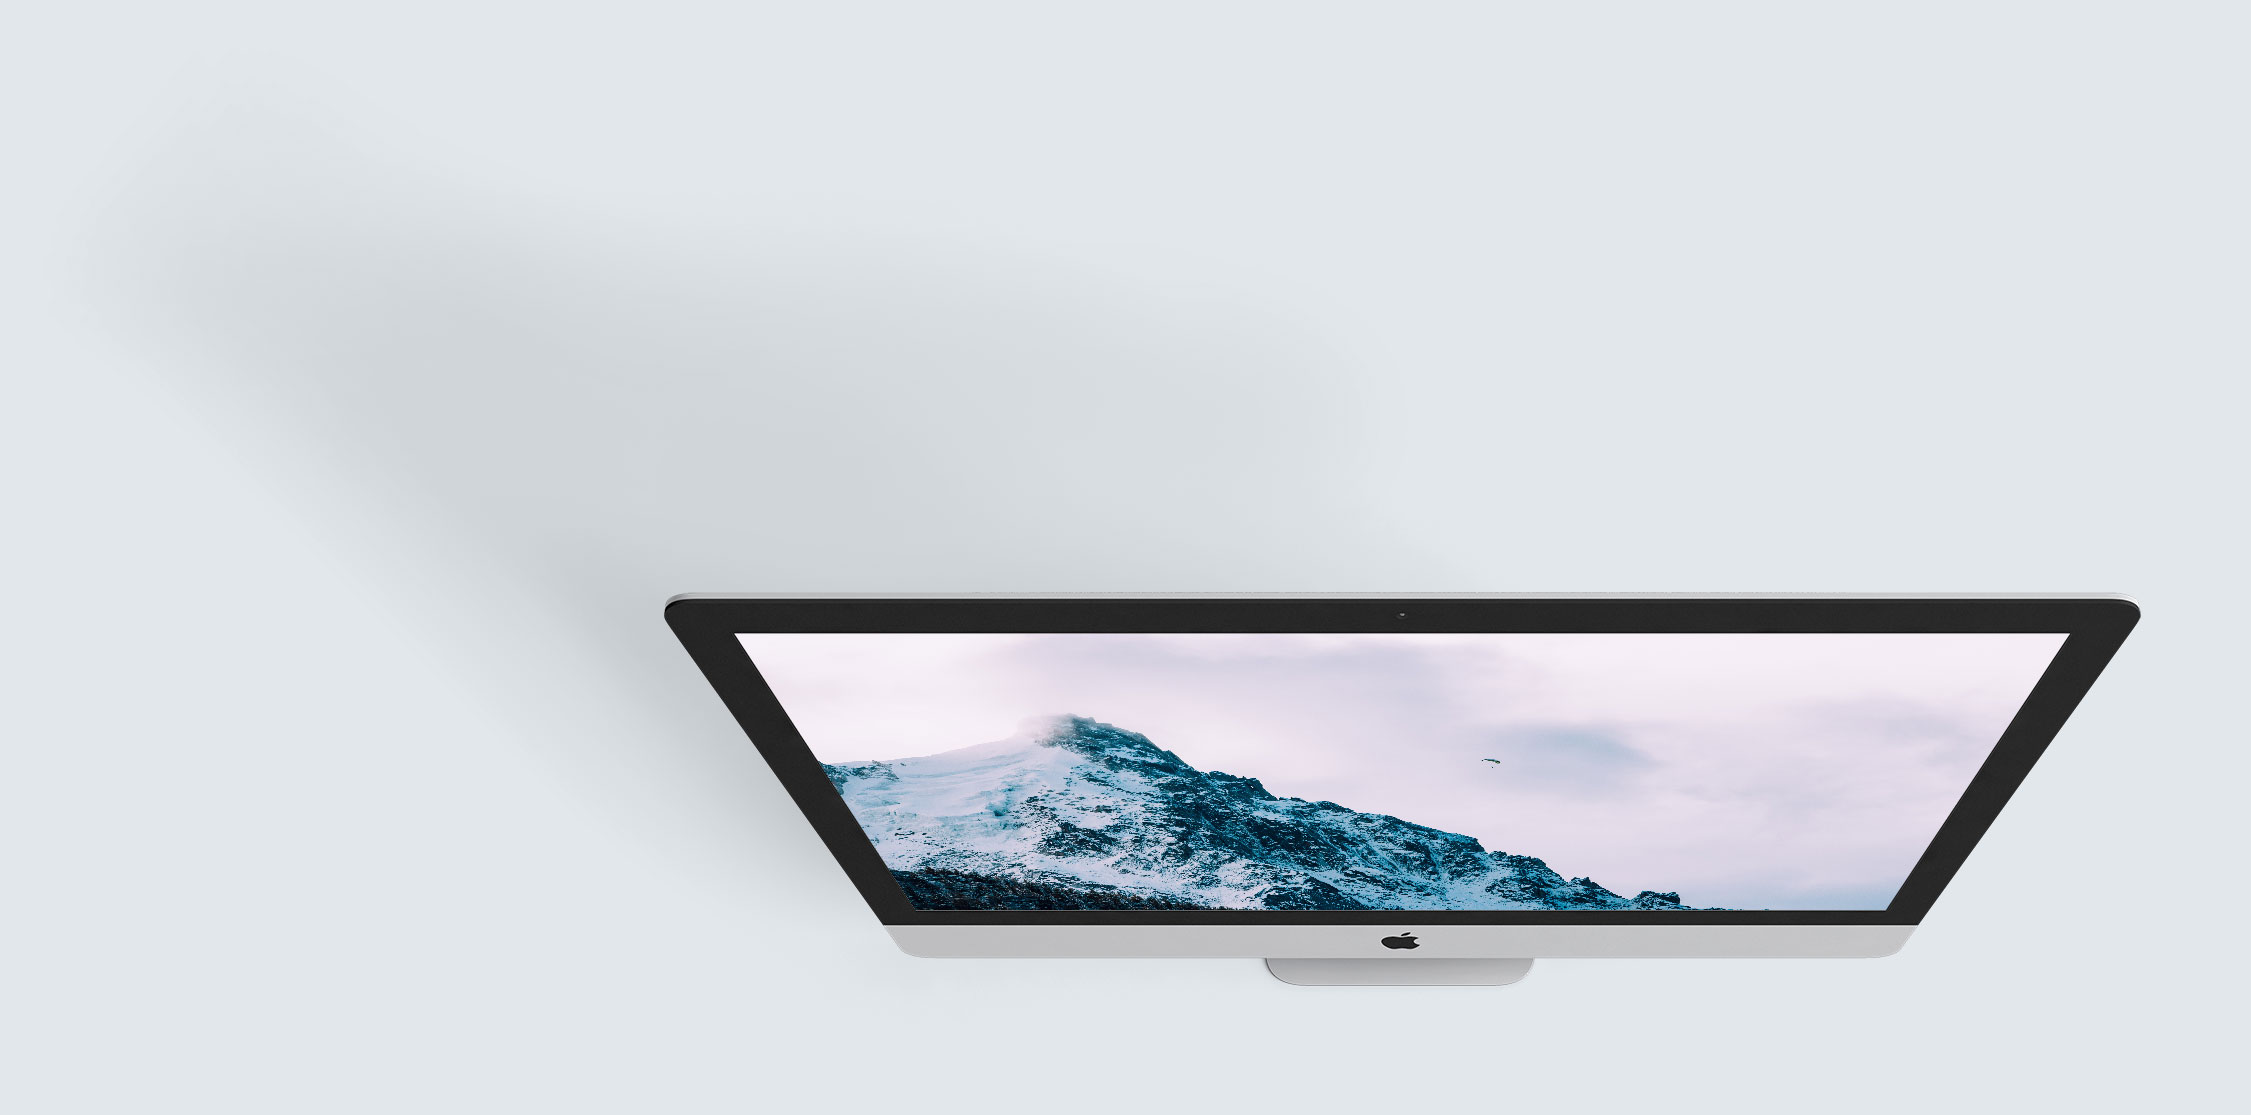 Panthera_iMac_Mountain_System